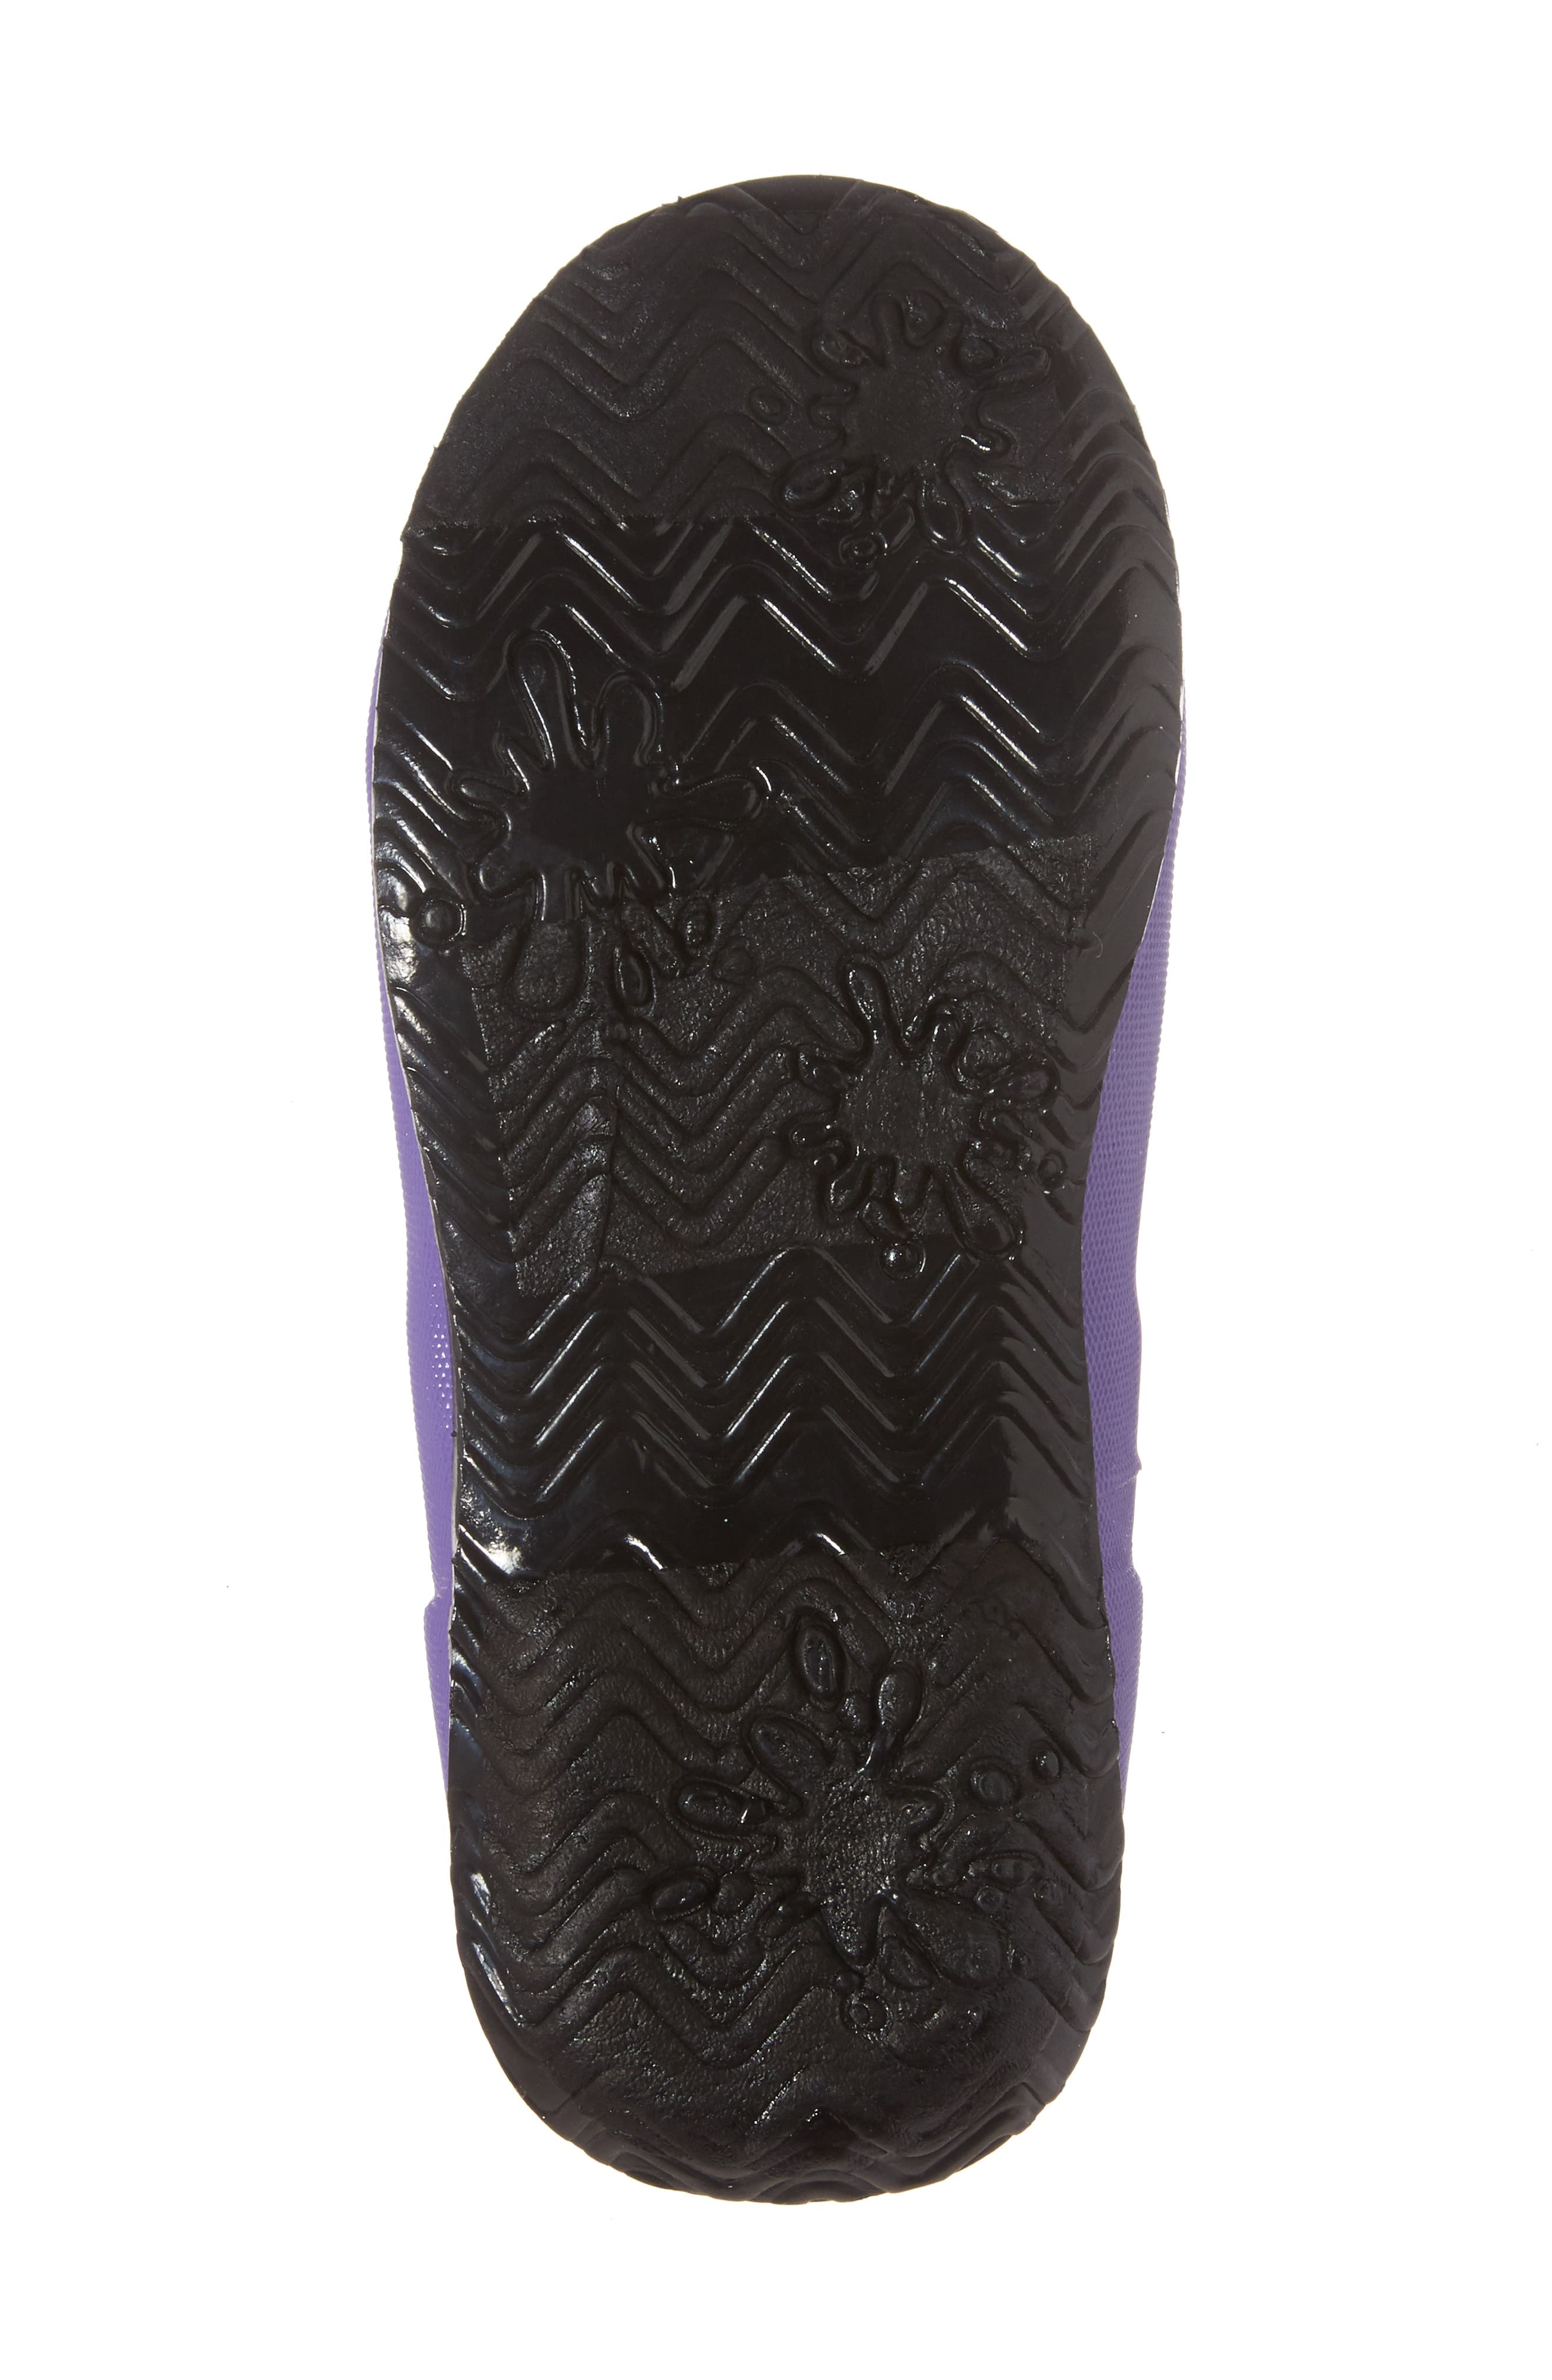 Wildflowers Rubber Rain Boot,                             Alternate thumbnail 6, color,                             Violet Multi